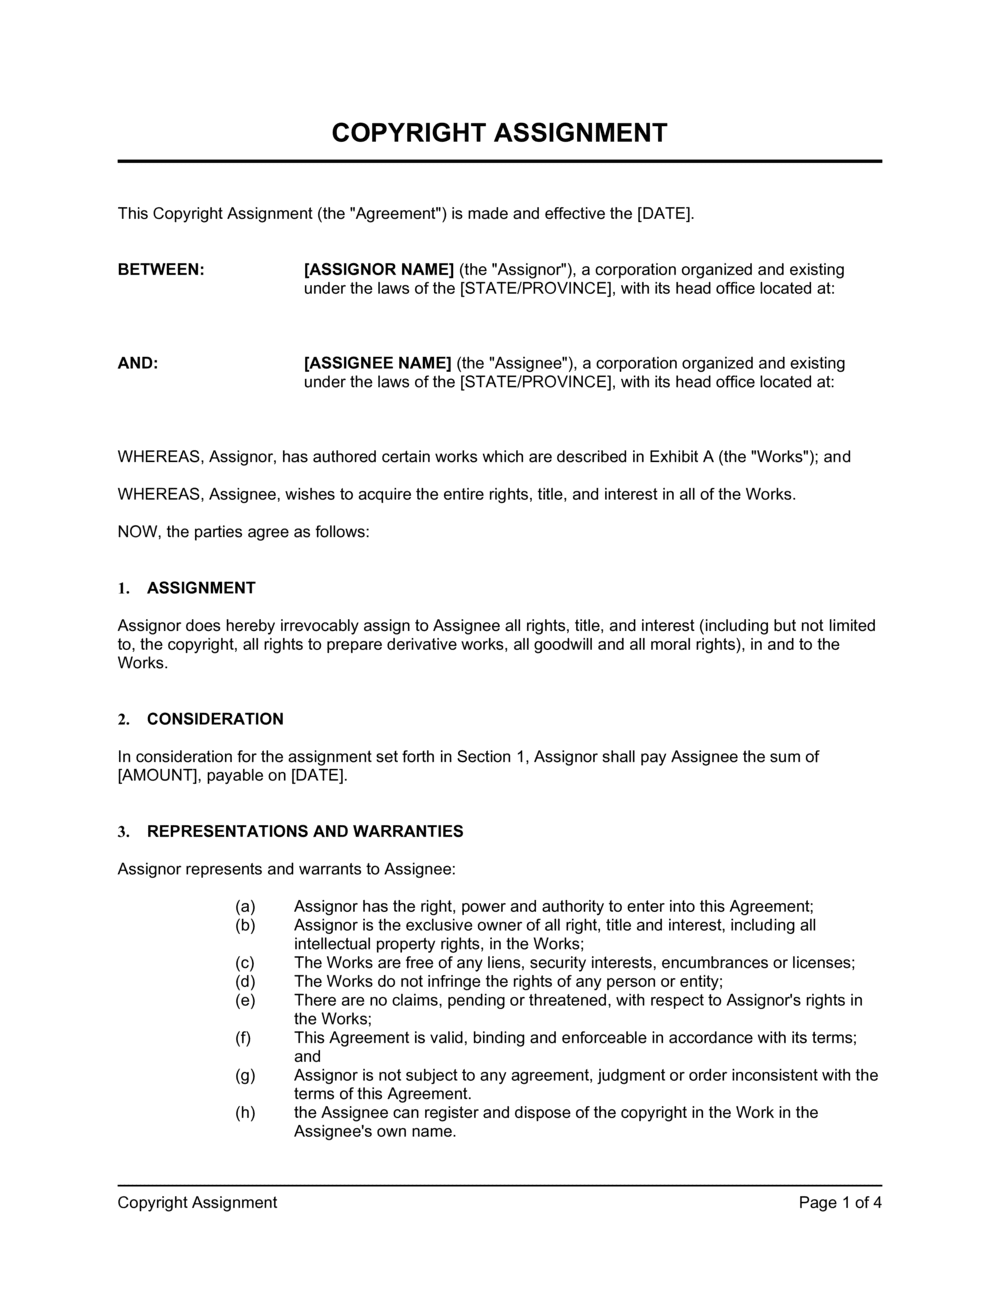 Business-in-a-Box's Copyright Assignment Template